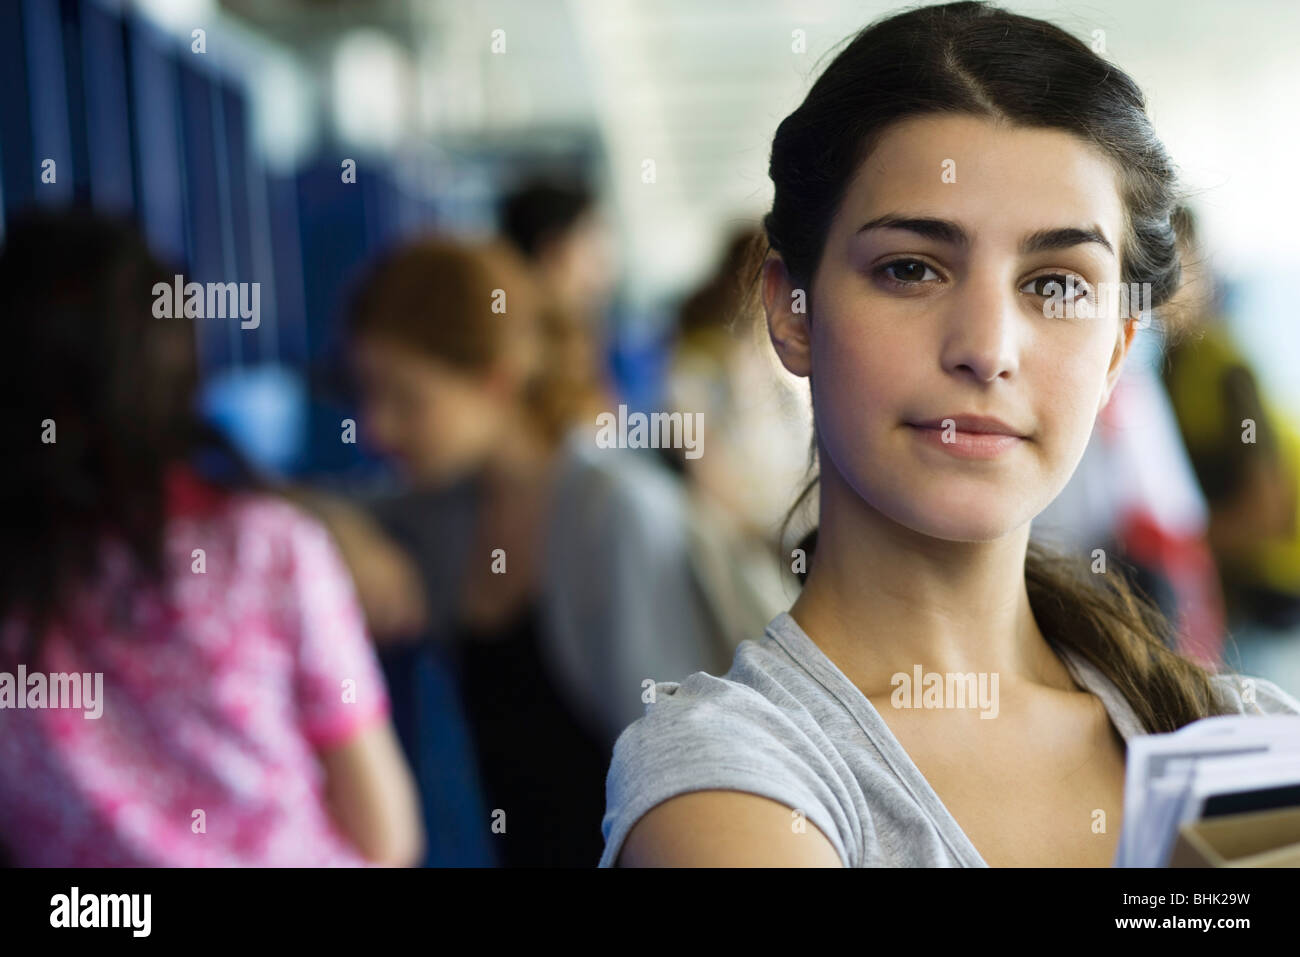 Female high school student, portrait - Stock Image